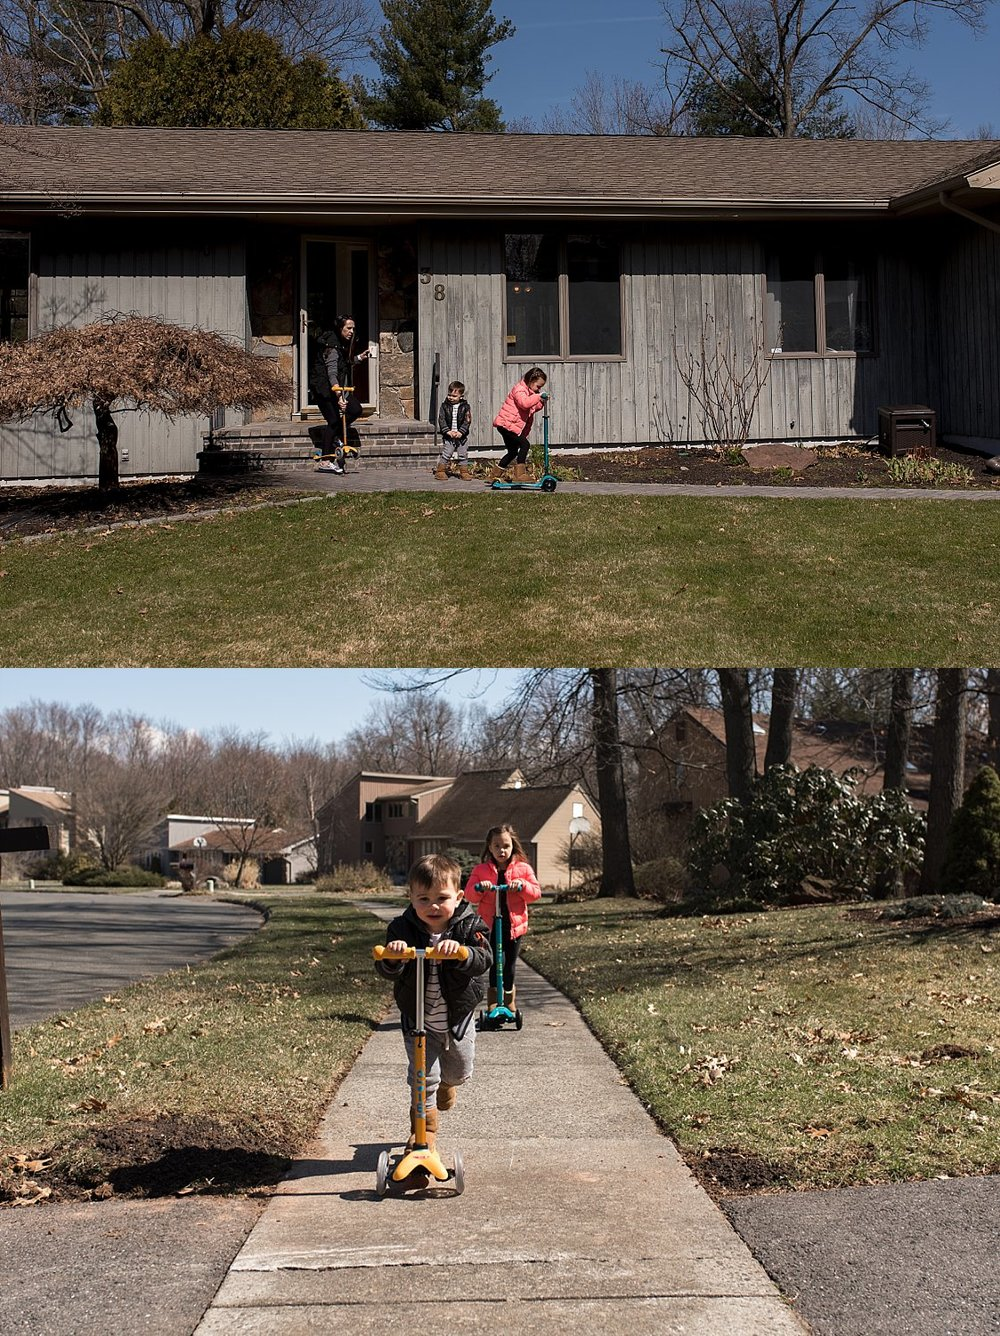 children riding scooters. ct documentary photographer.